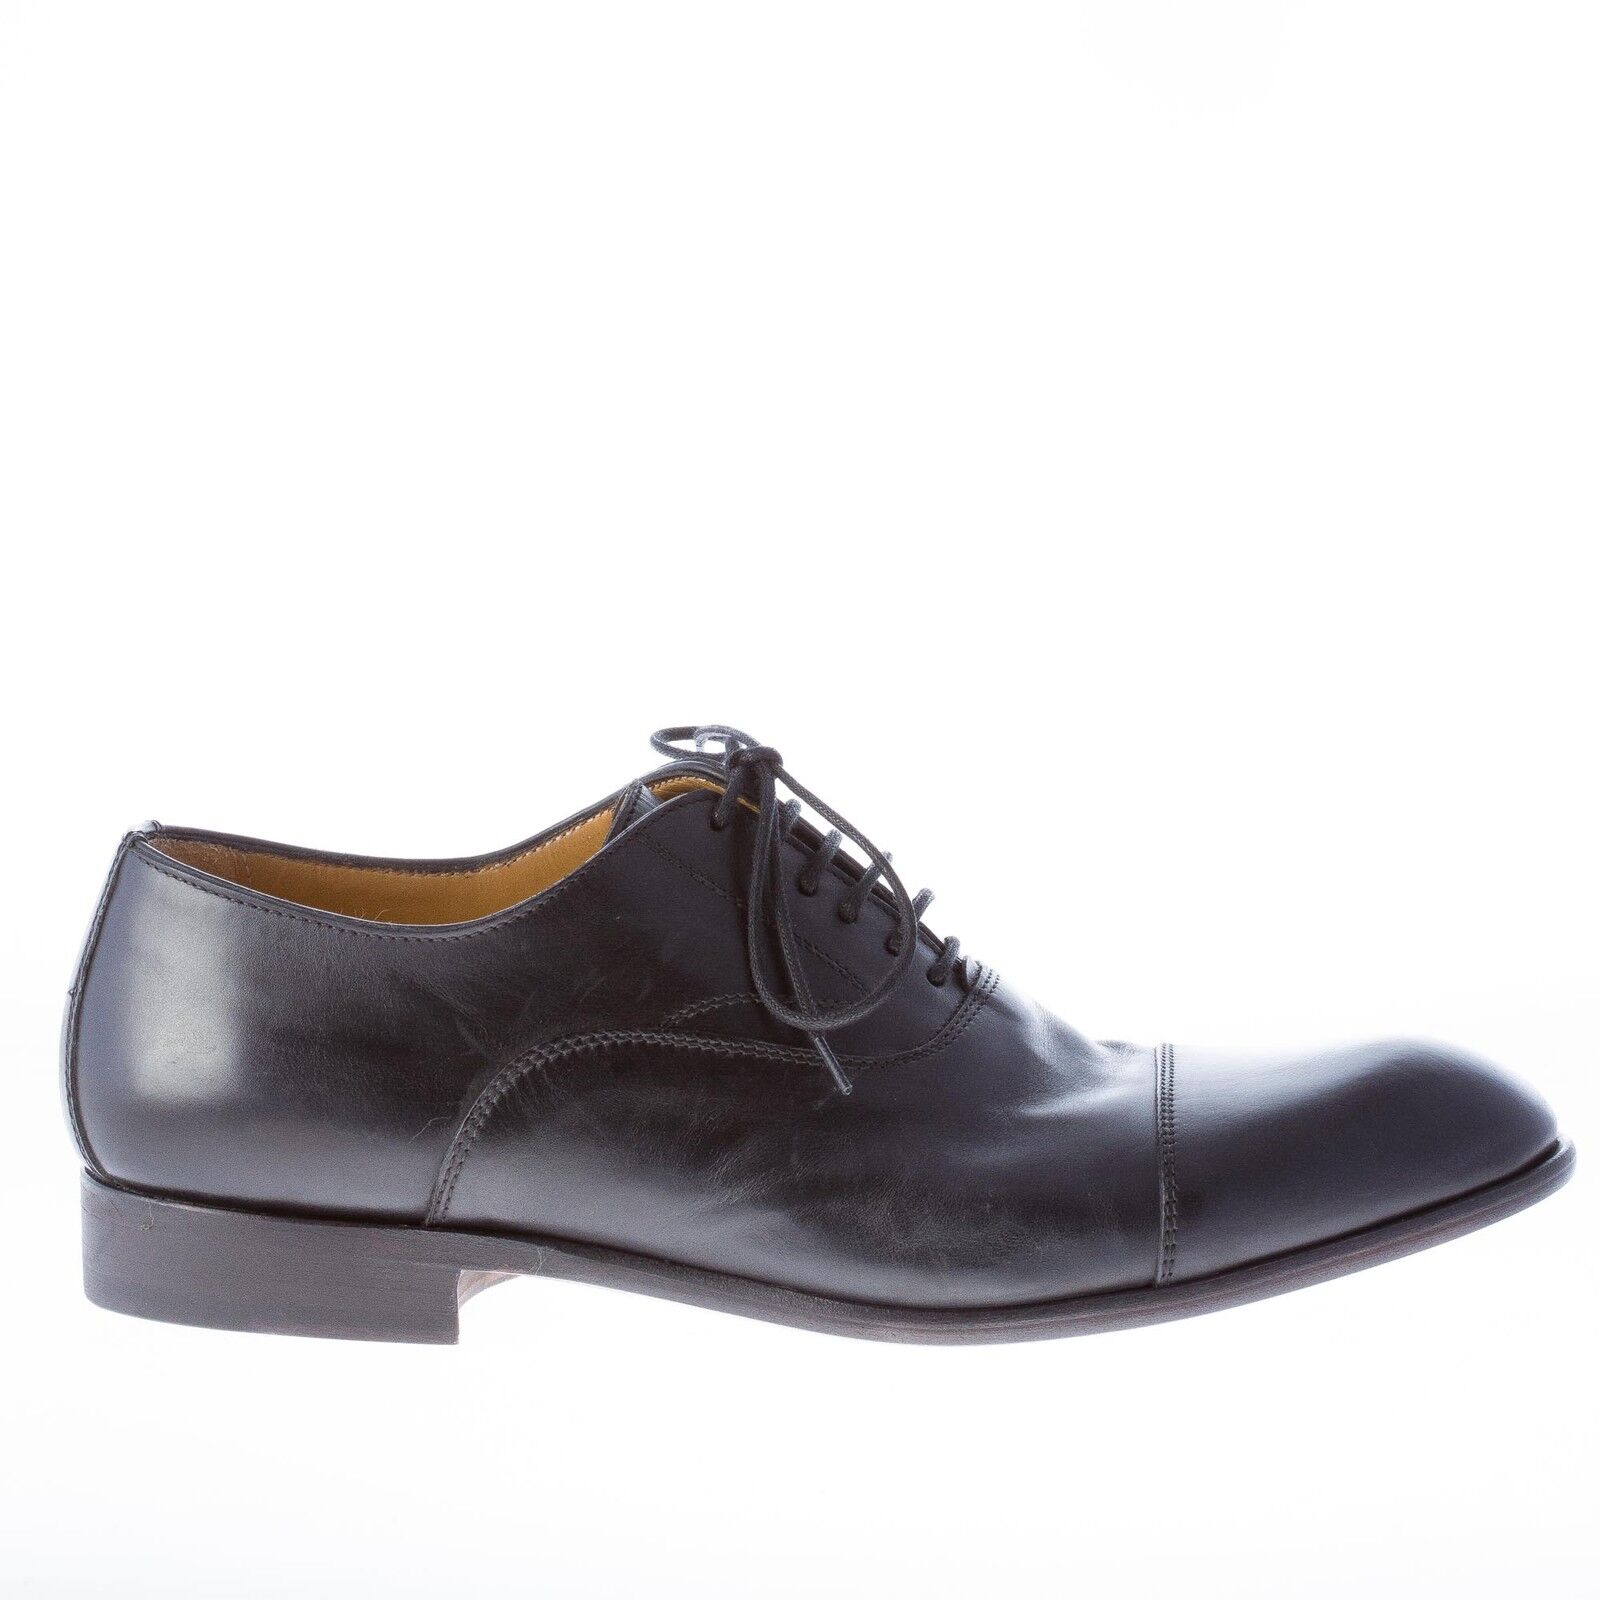 MIGLIORE men shoes made in Italy Black calf leather cap toe oxford leather sole